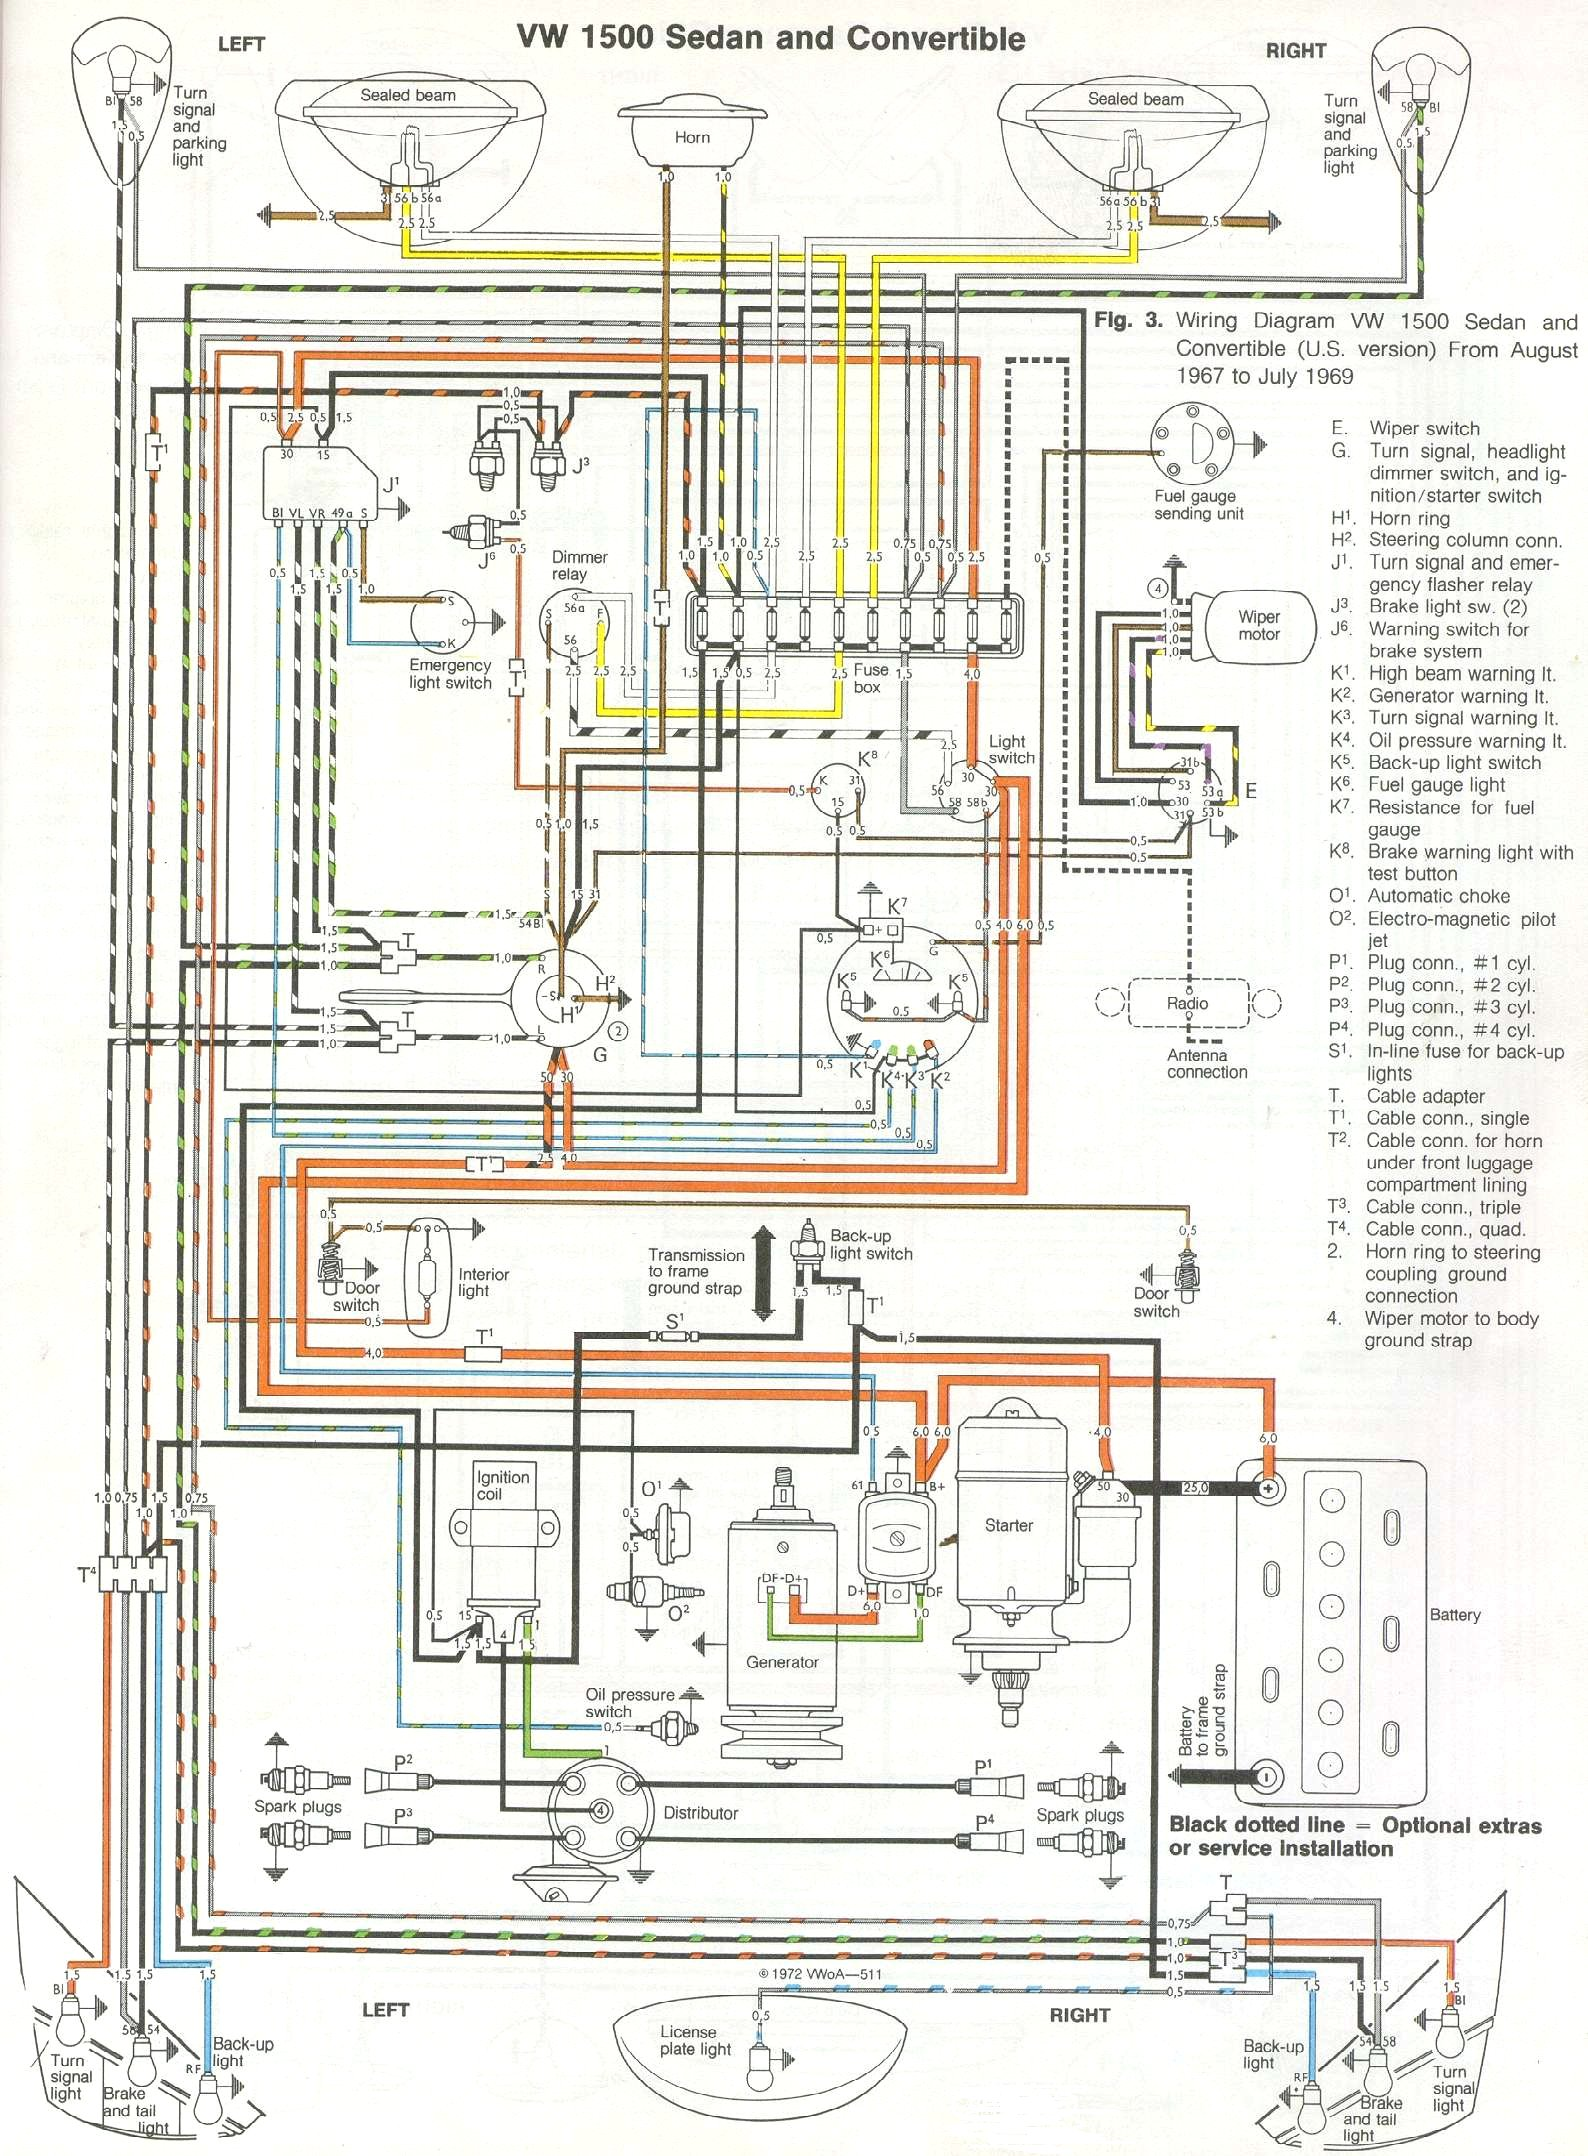 bug_6869 1968 69 beetle wiring diagram (usa) thegoldenbug com 1957 vw beetle wiring diagram at bayanpartner.co